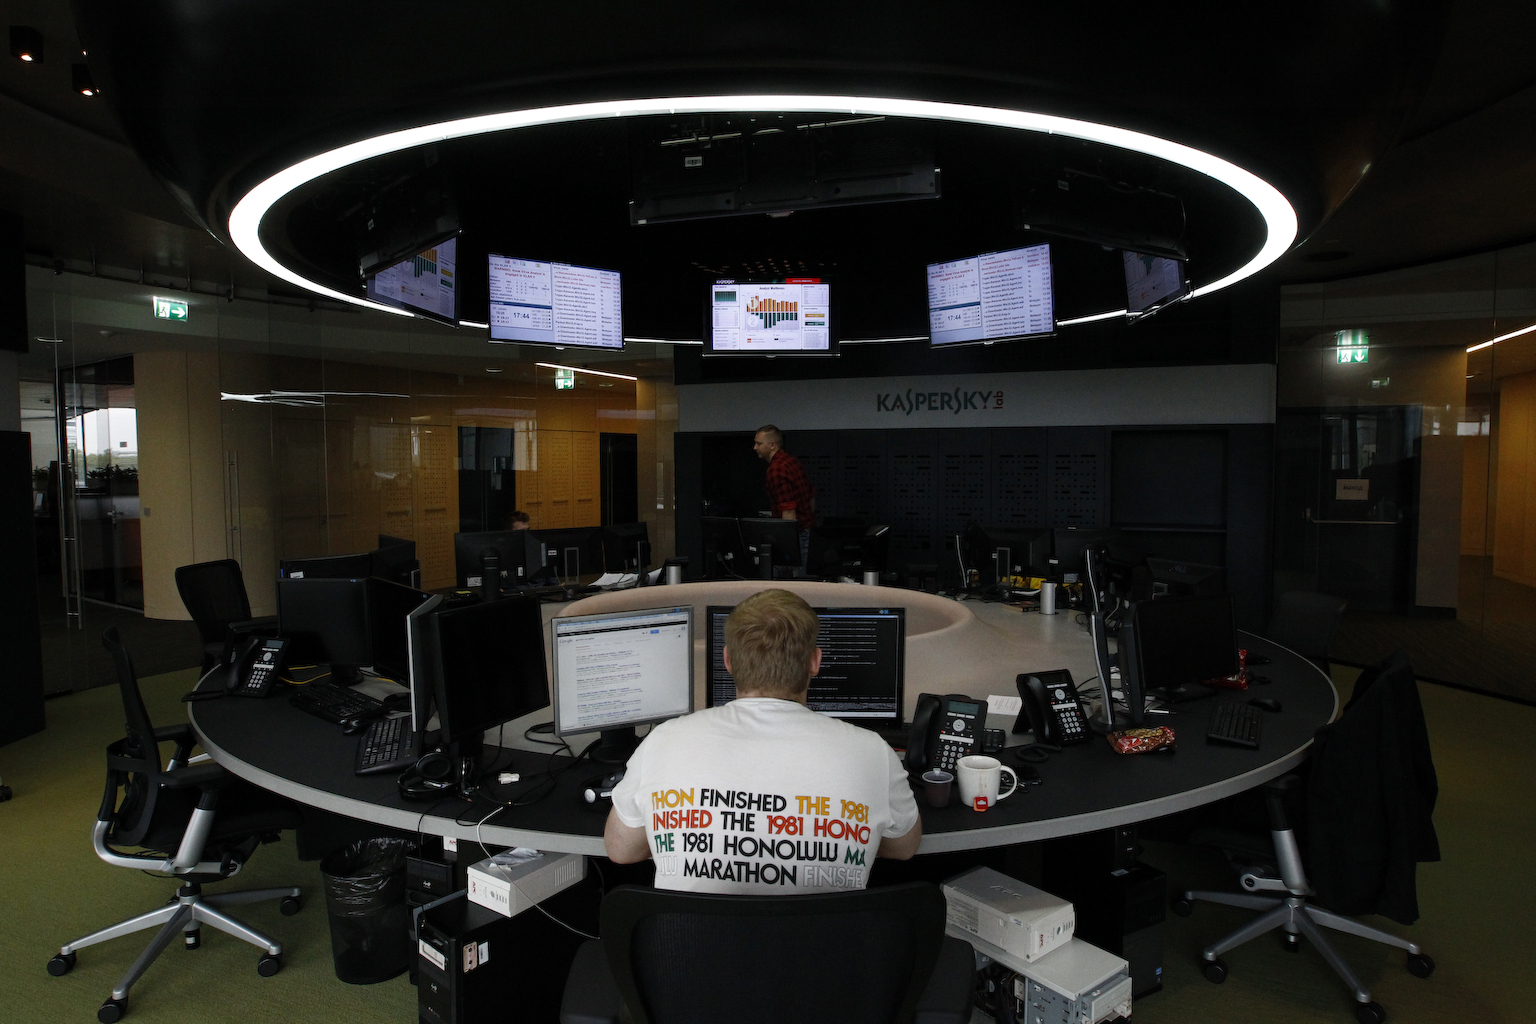 Kaspersky cybersecurity labs in Moscow, Russia